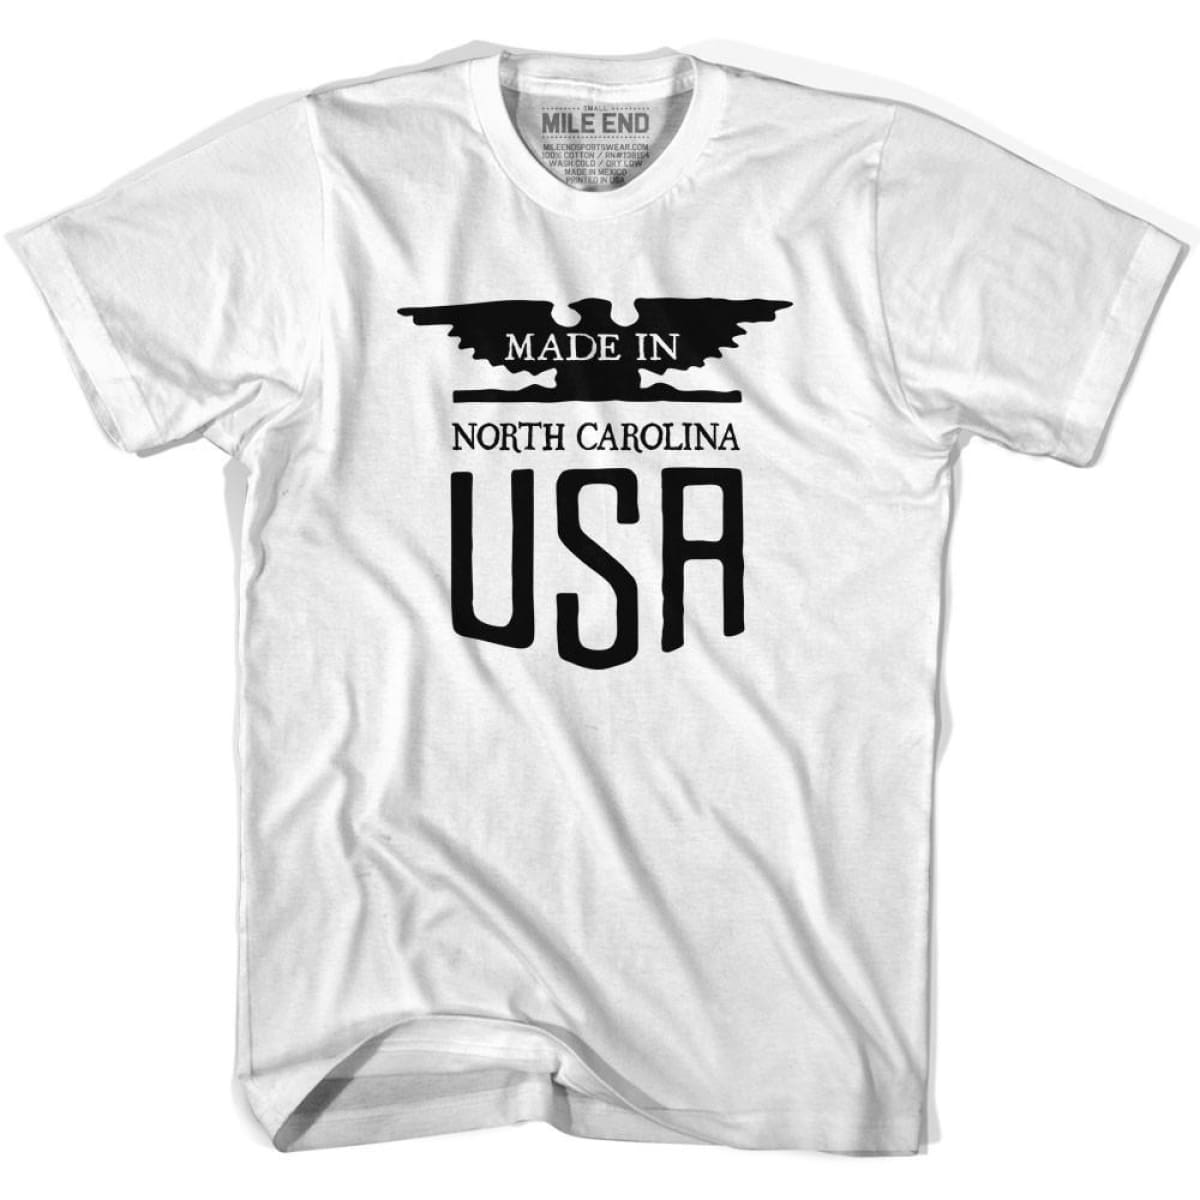 North Carolina Vintage Eagle T-shirt - White / Youth X-Small - Made in Eagle